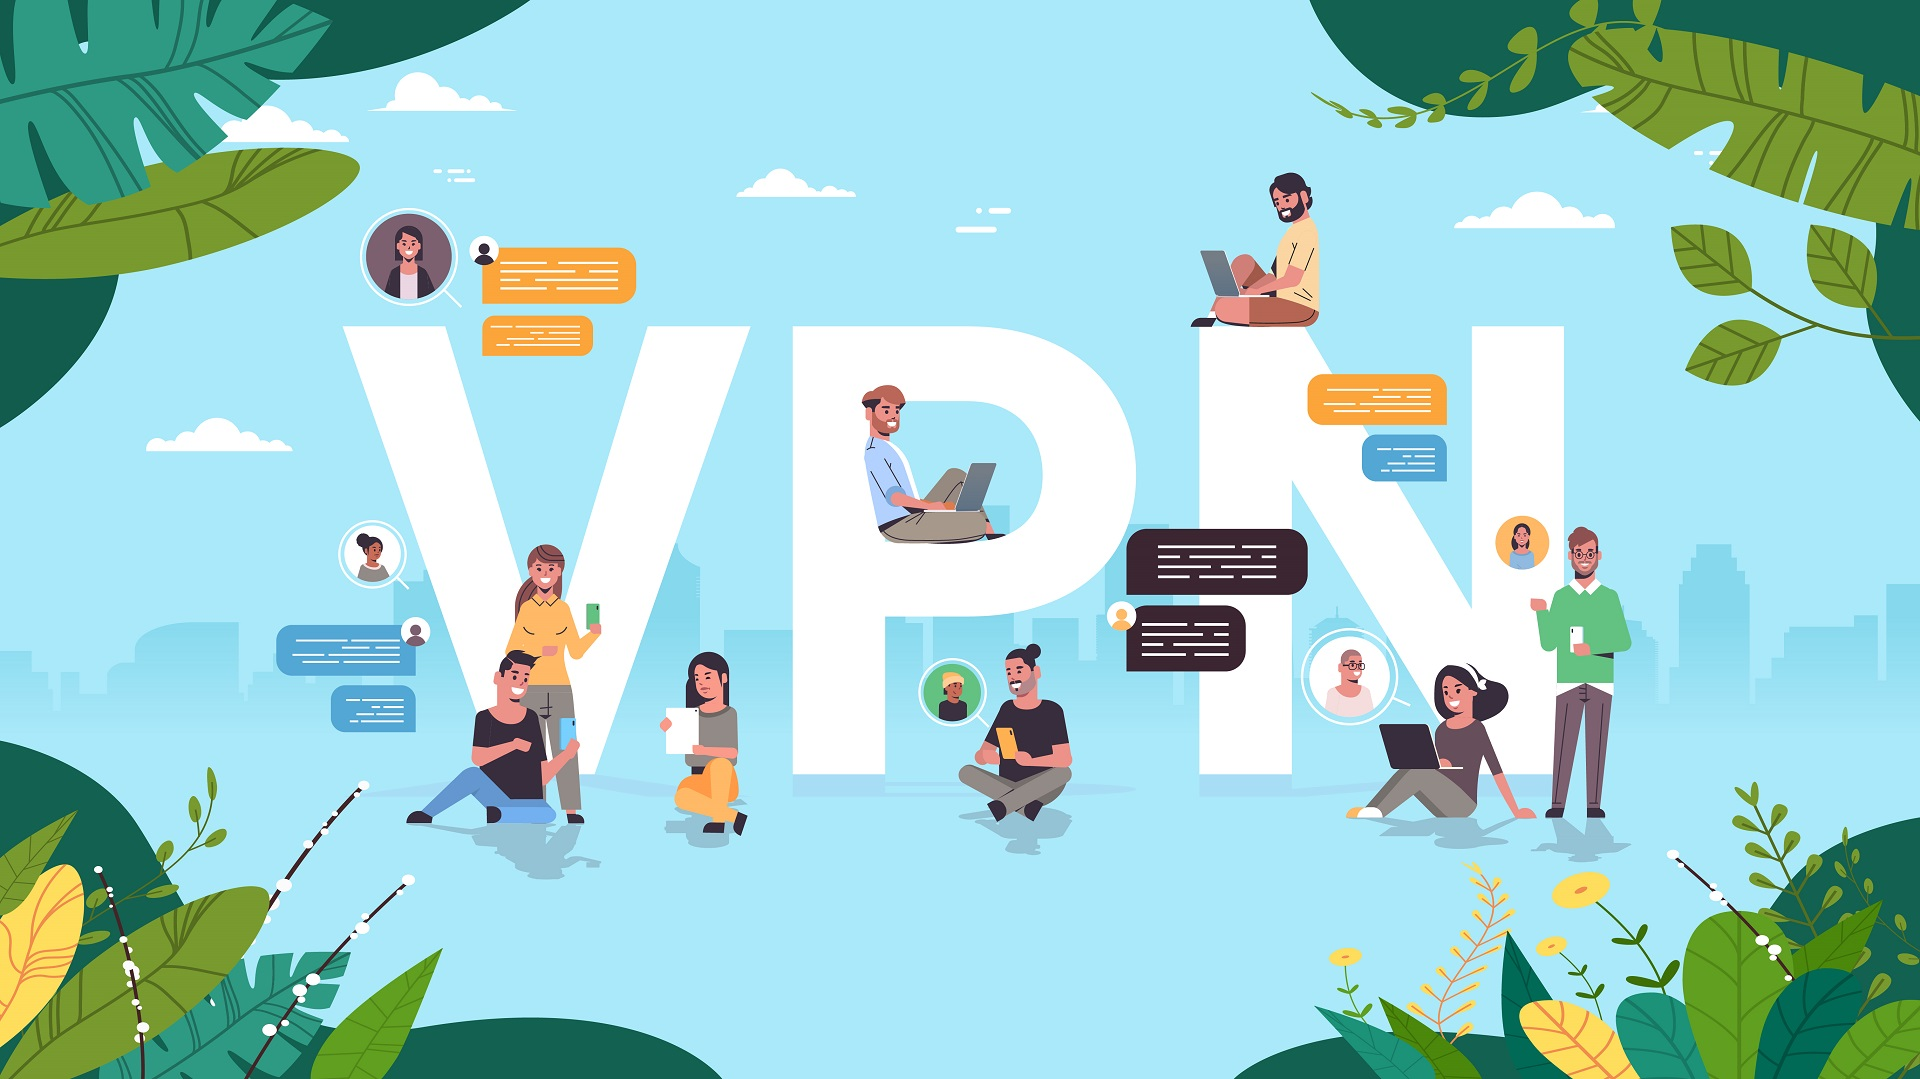 people using virtual private network vpn for communication cyber security and privacy concept secure online connection personal data protection horizontal full length vector illustration